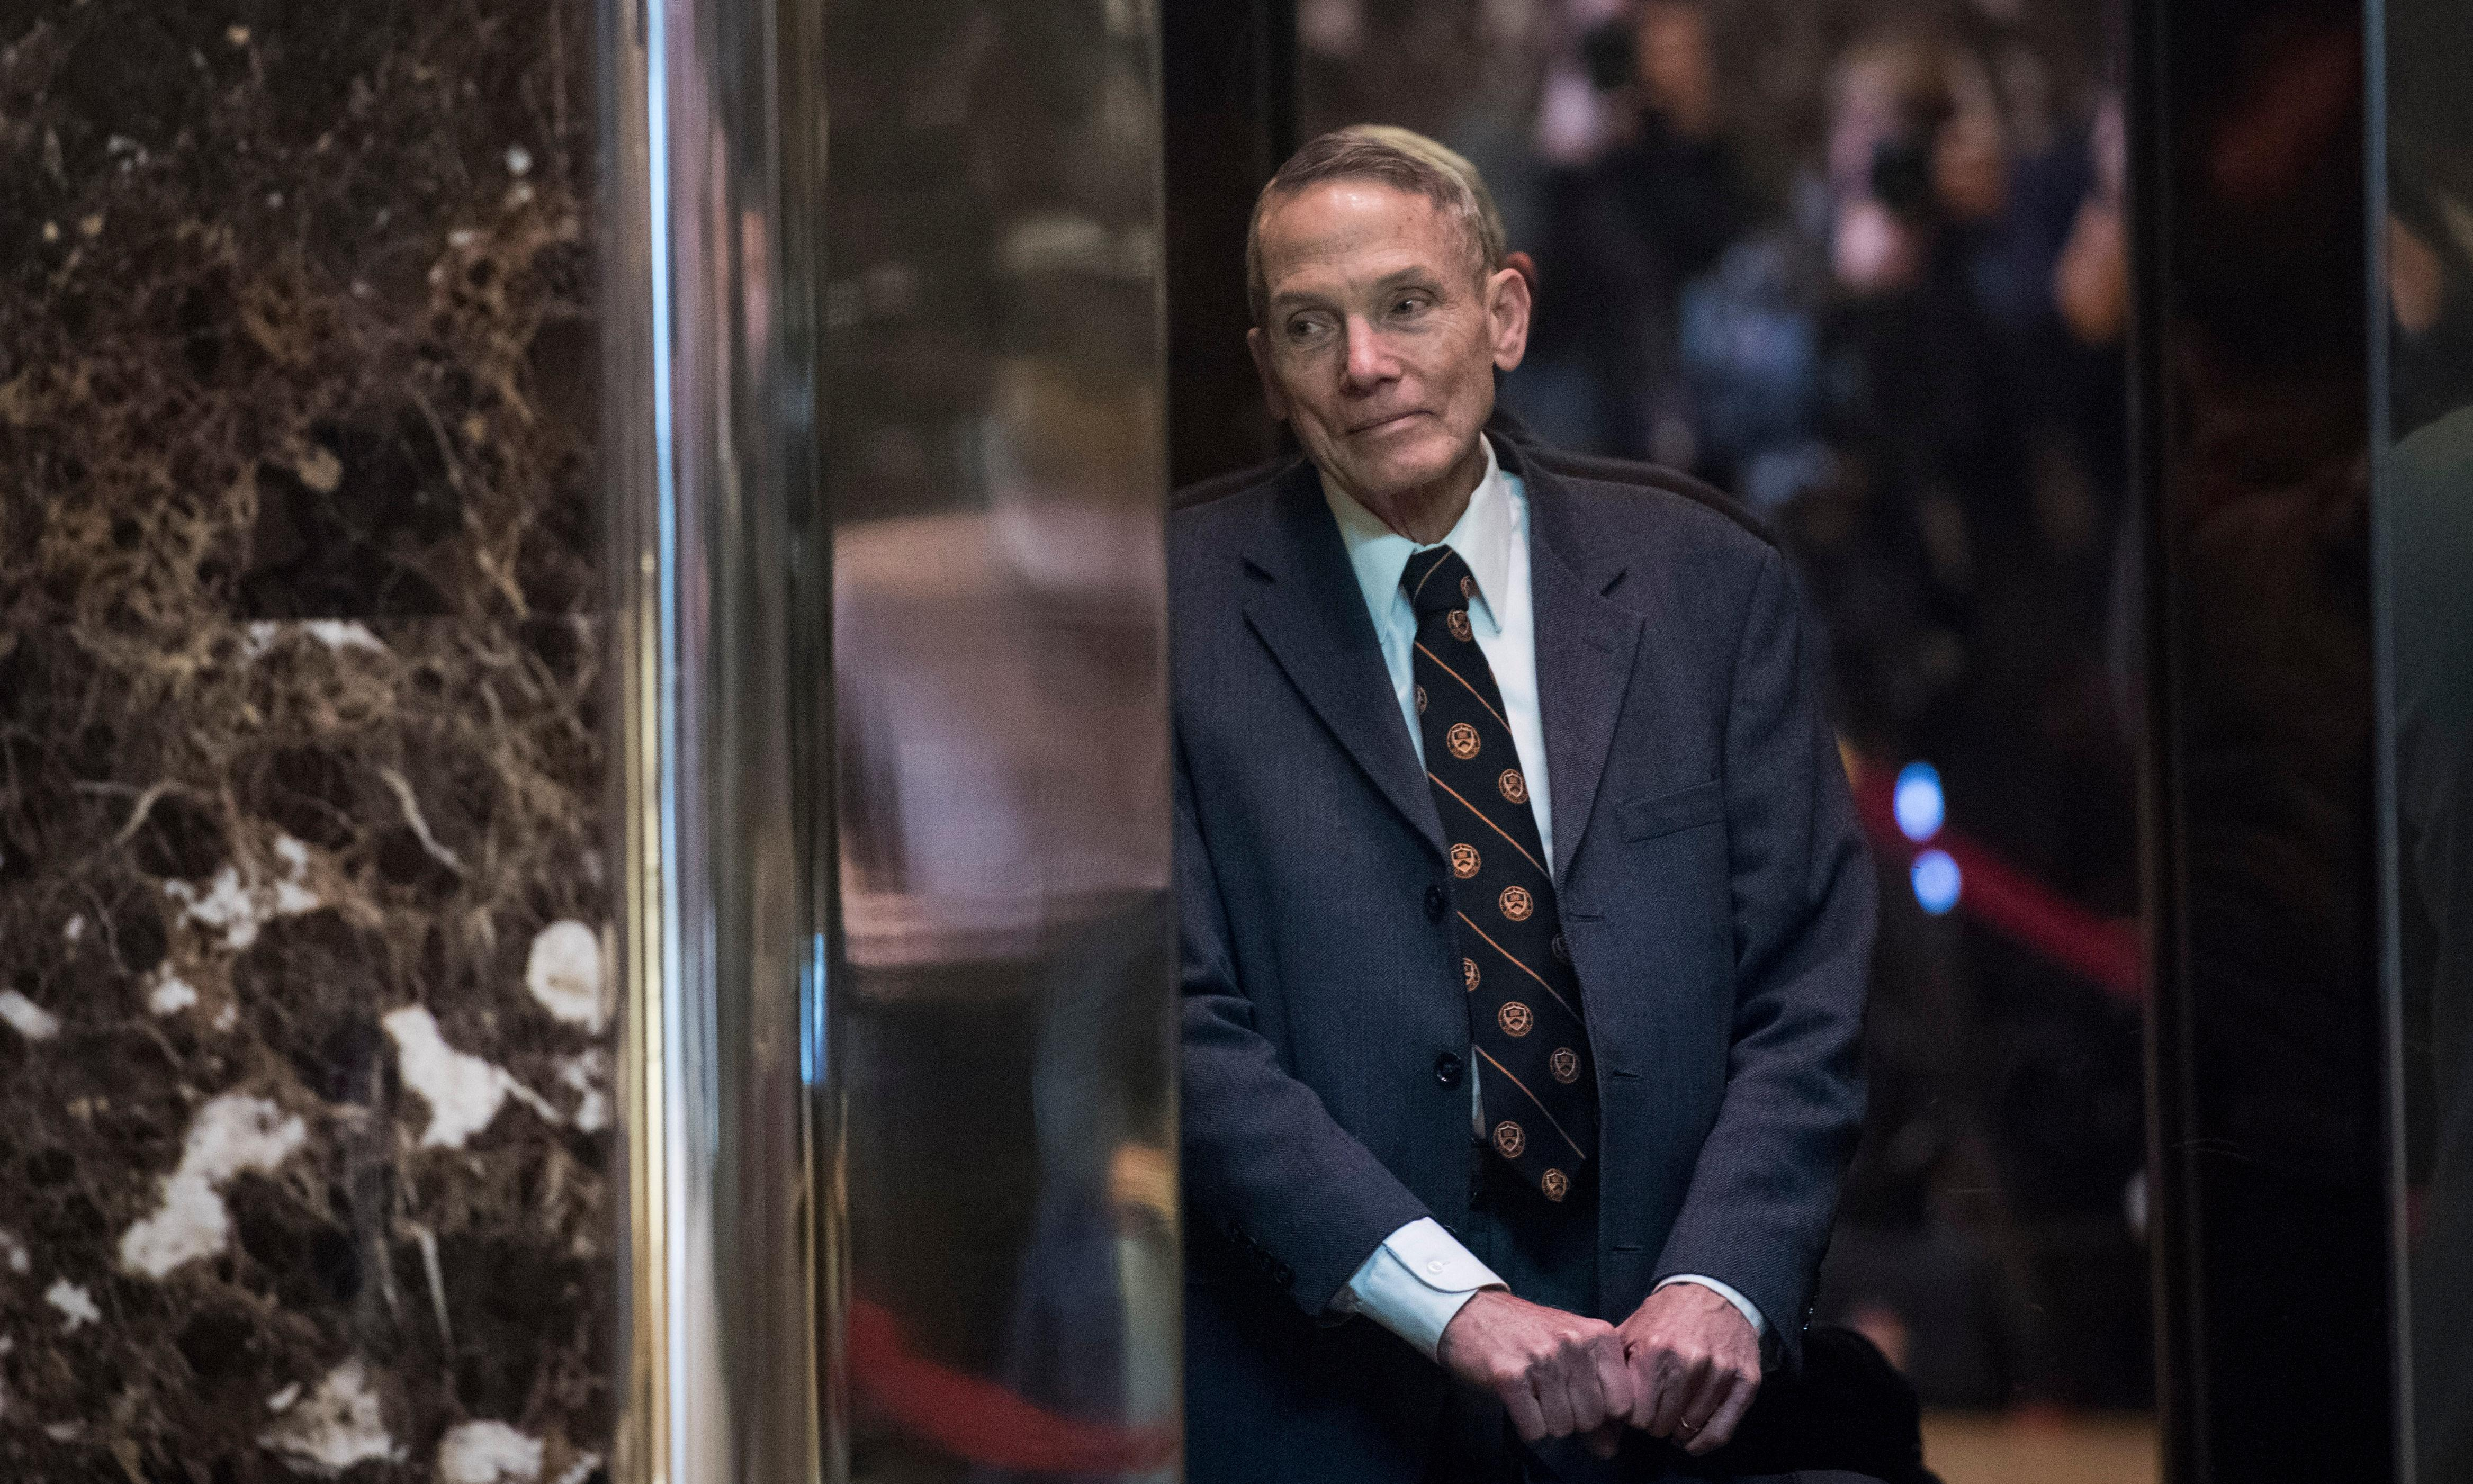 William Happer: Trump aide pushing climate denial inside the White House